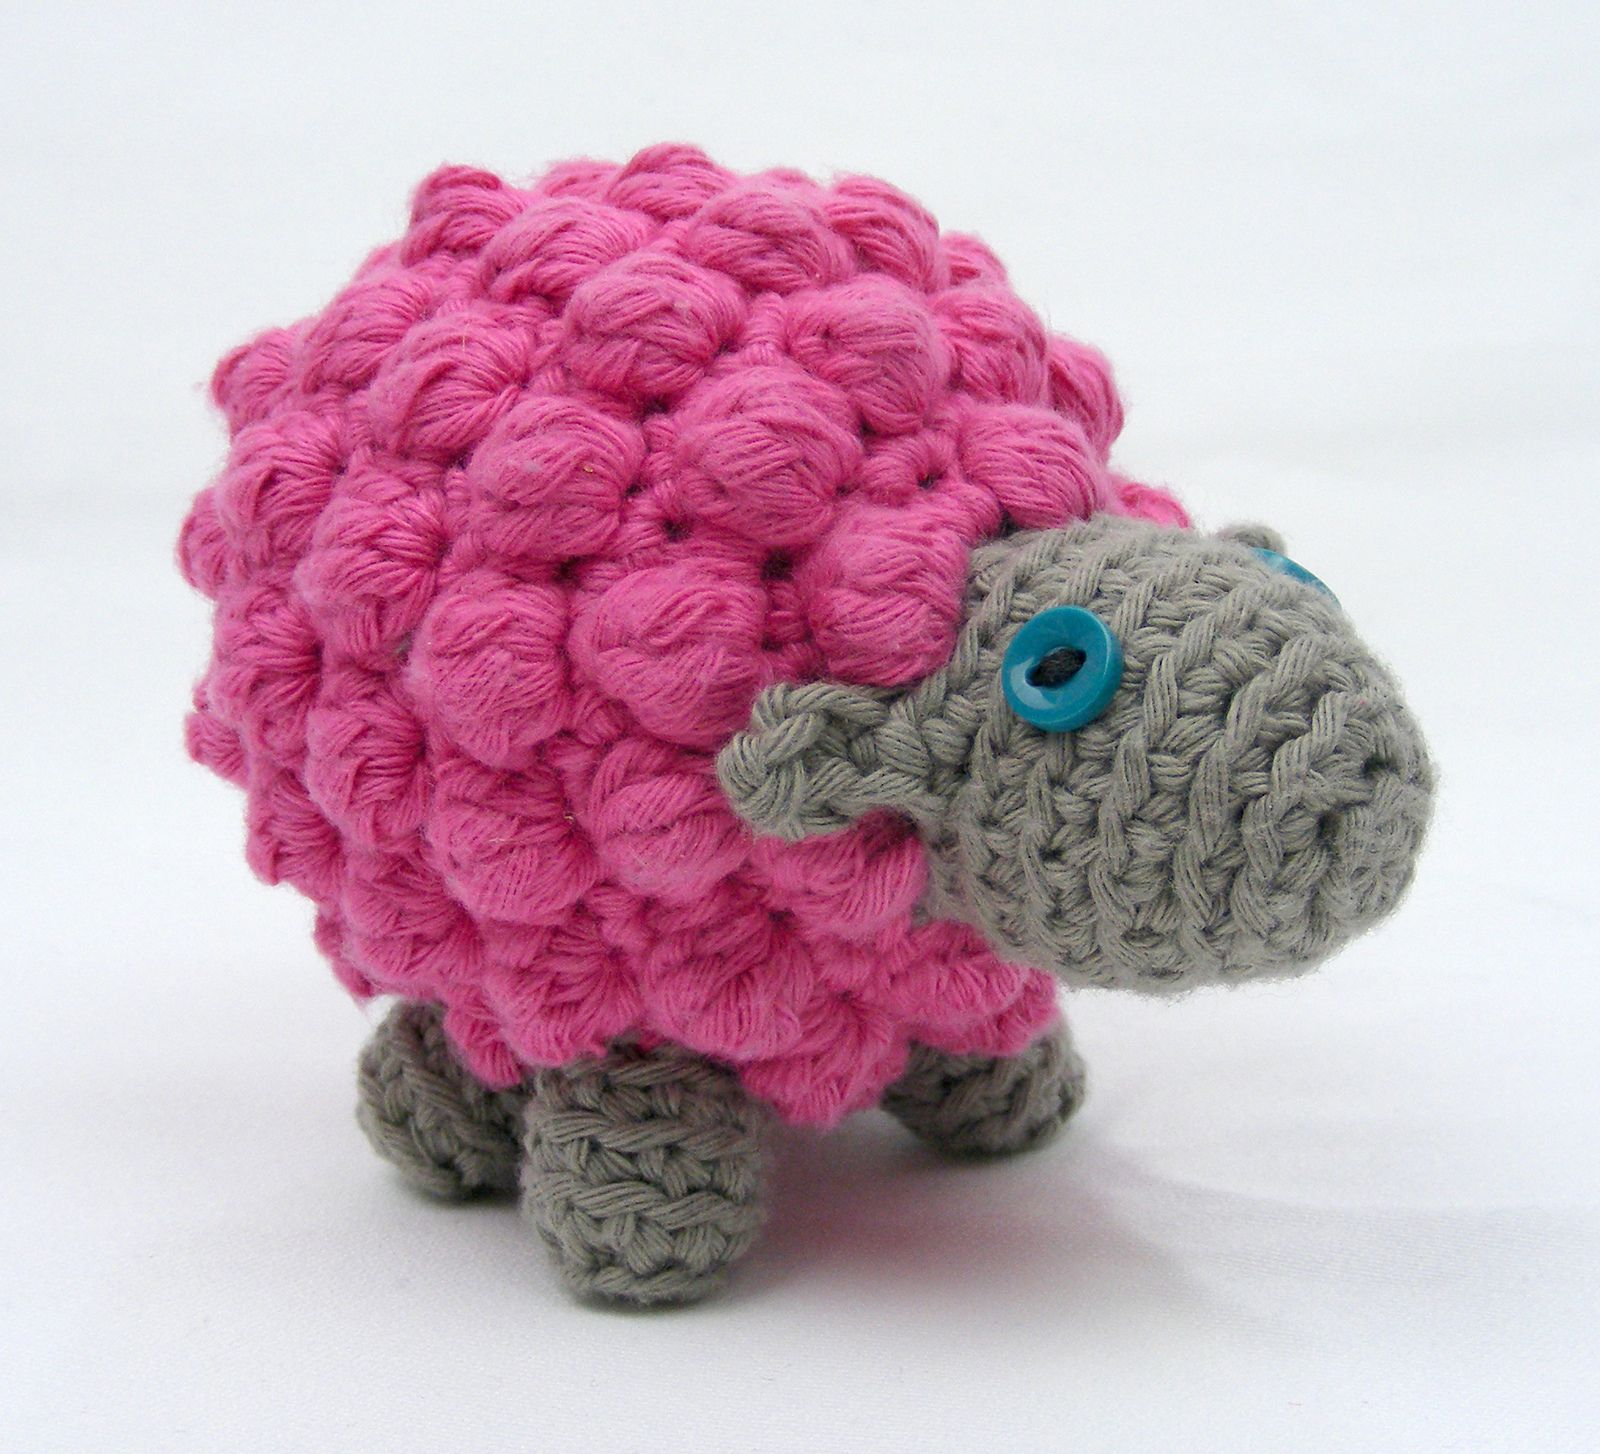 Ravelry: Bobble Sheep by Just Add Crochet (Emma Field)   Amigurinis ...